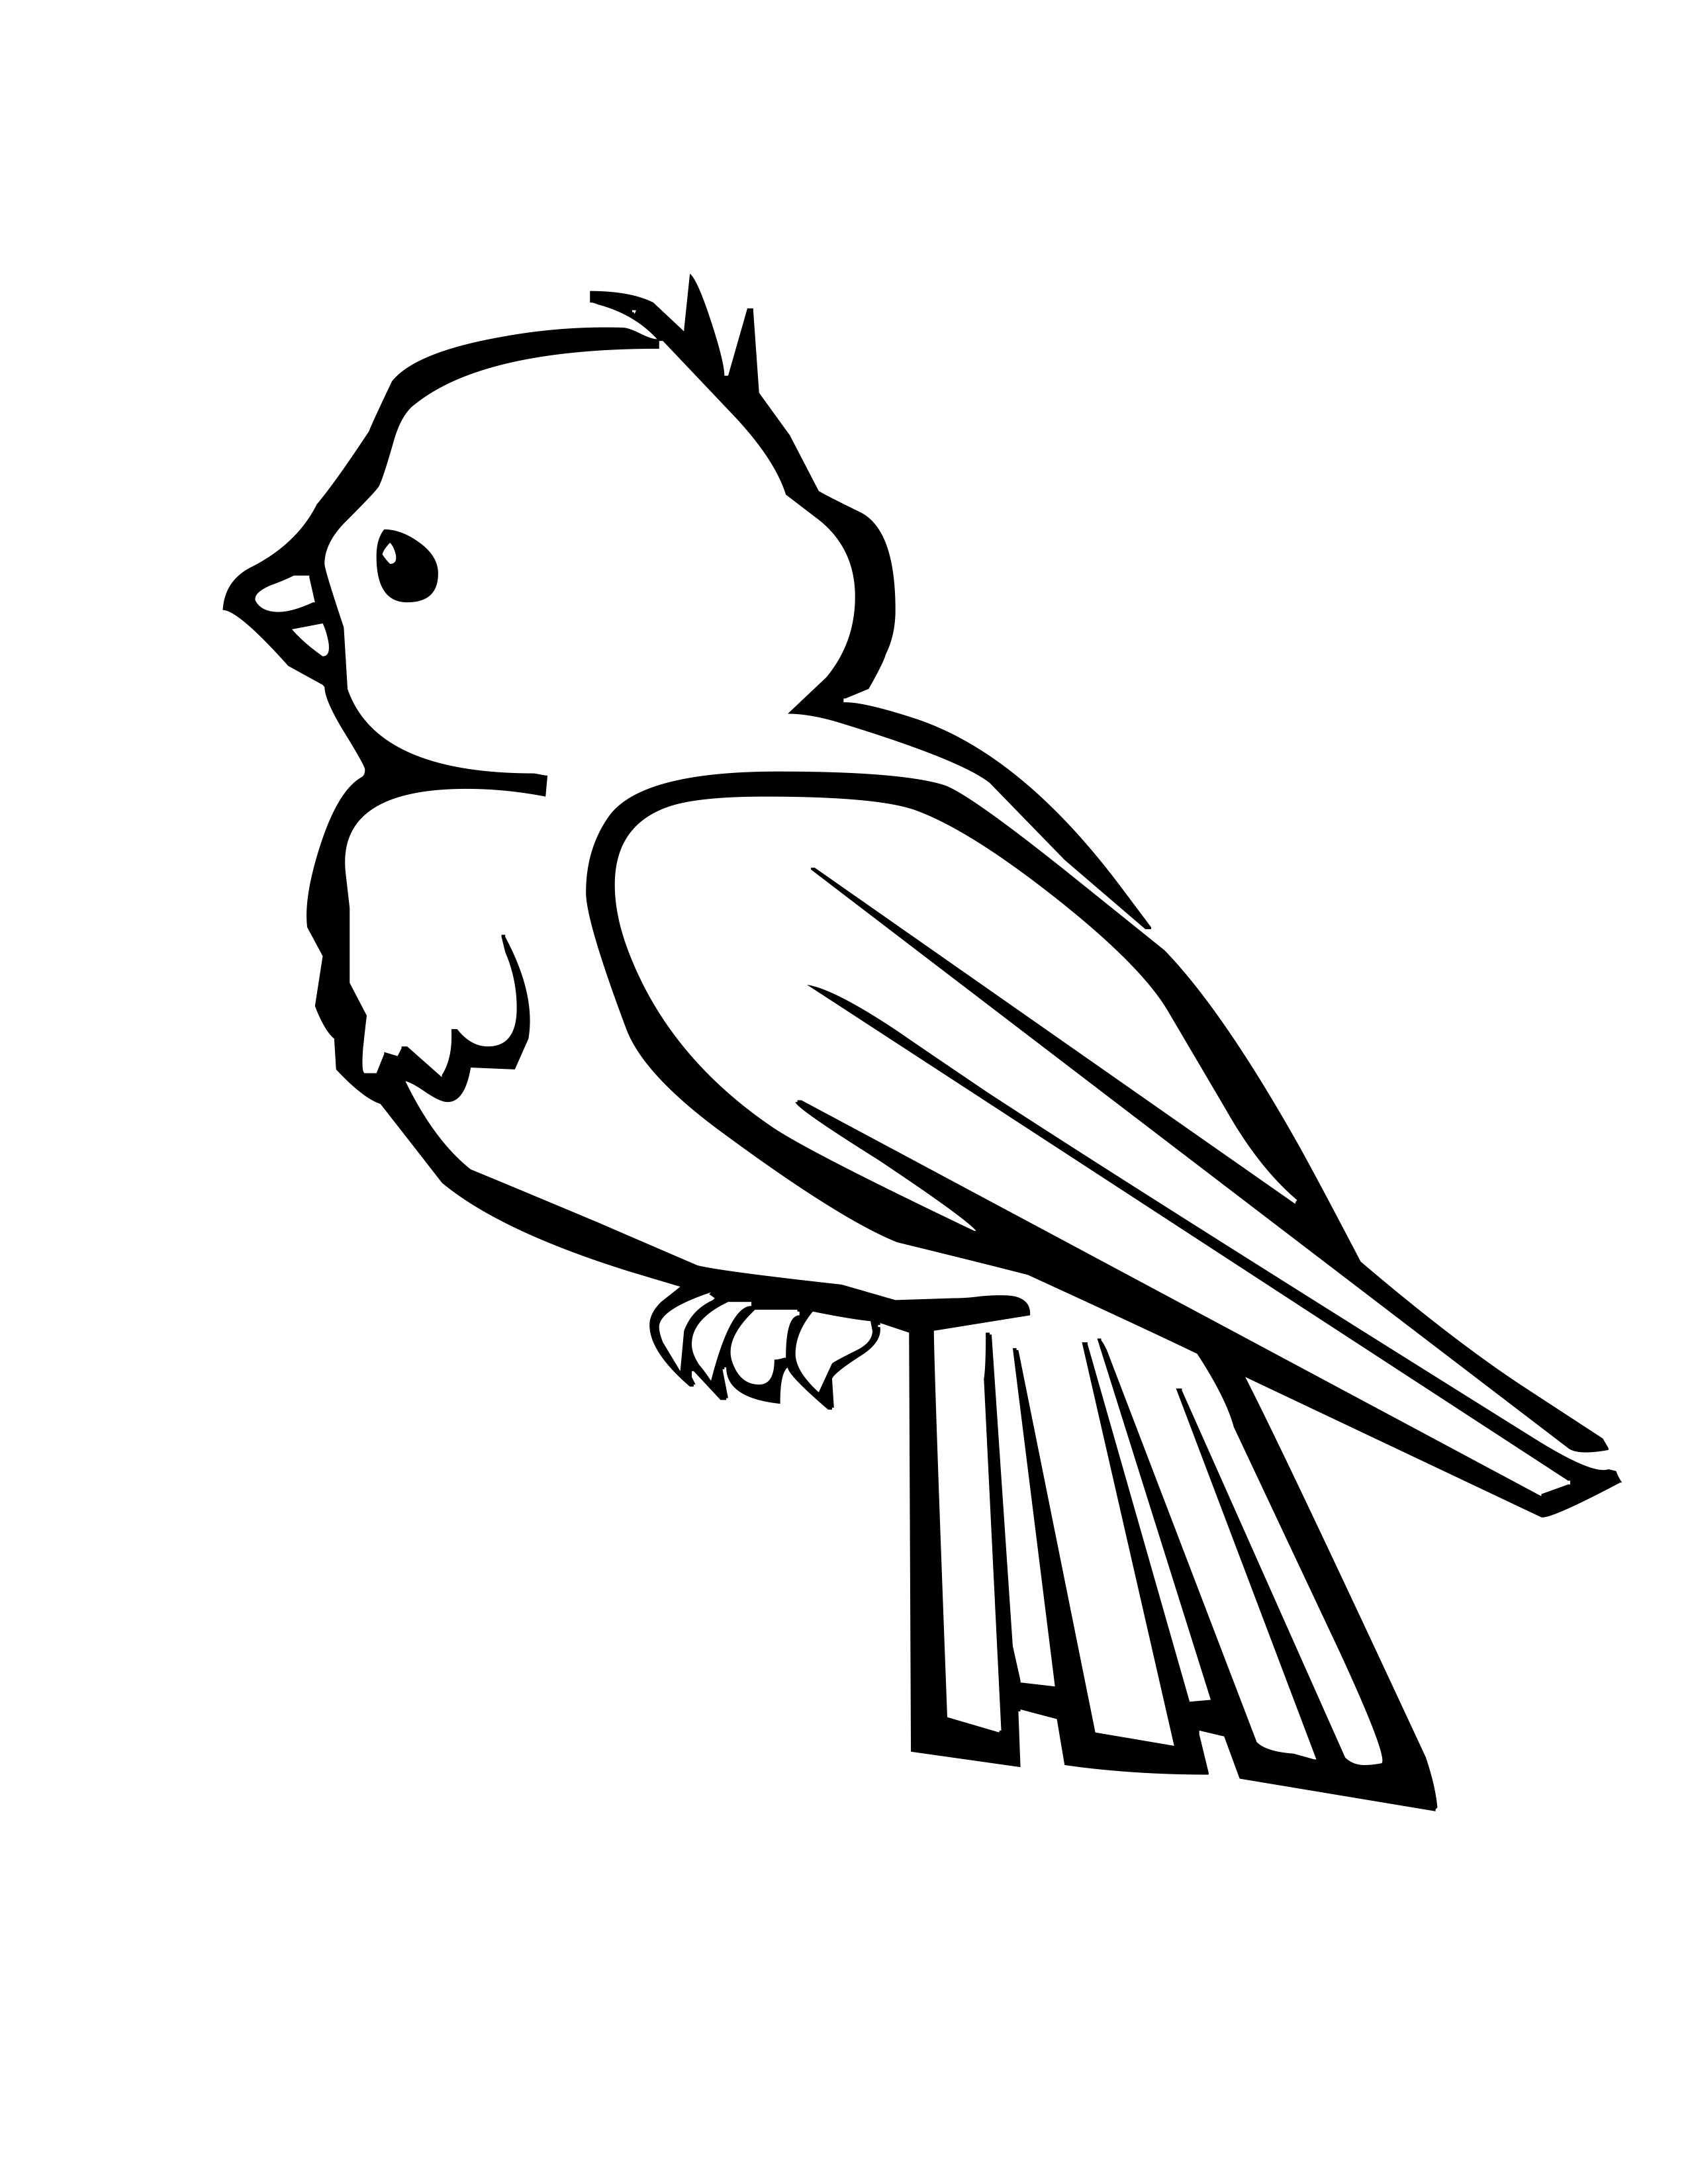 macaw pictures to color robin coloring pages best coloring pages for kids color macaw pictures to